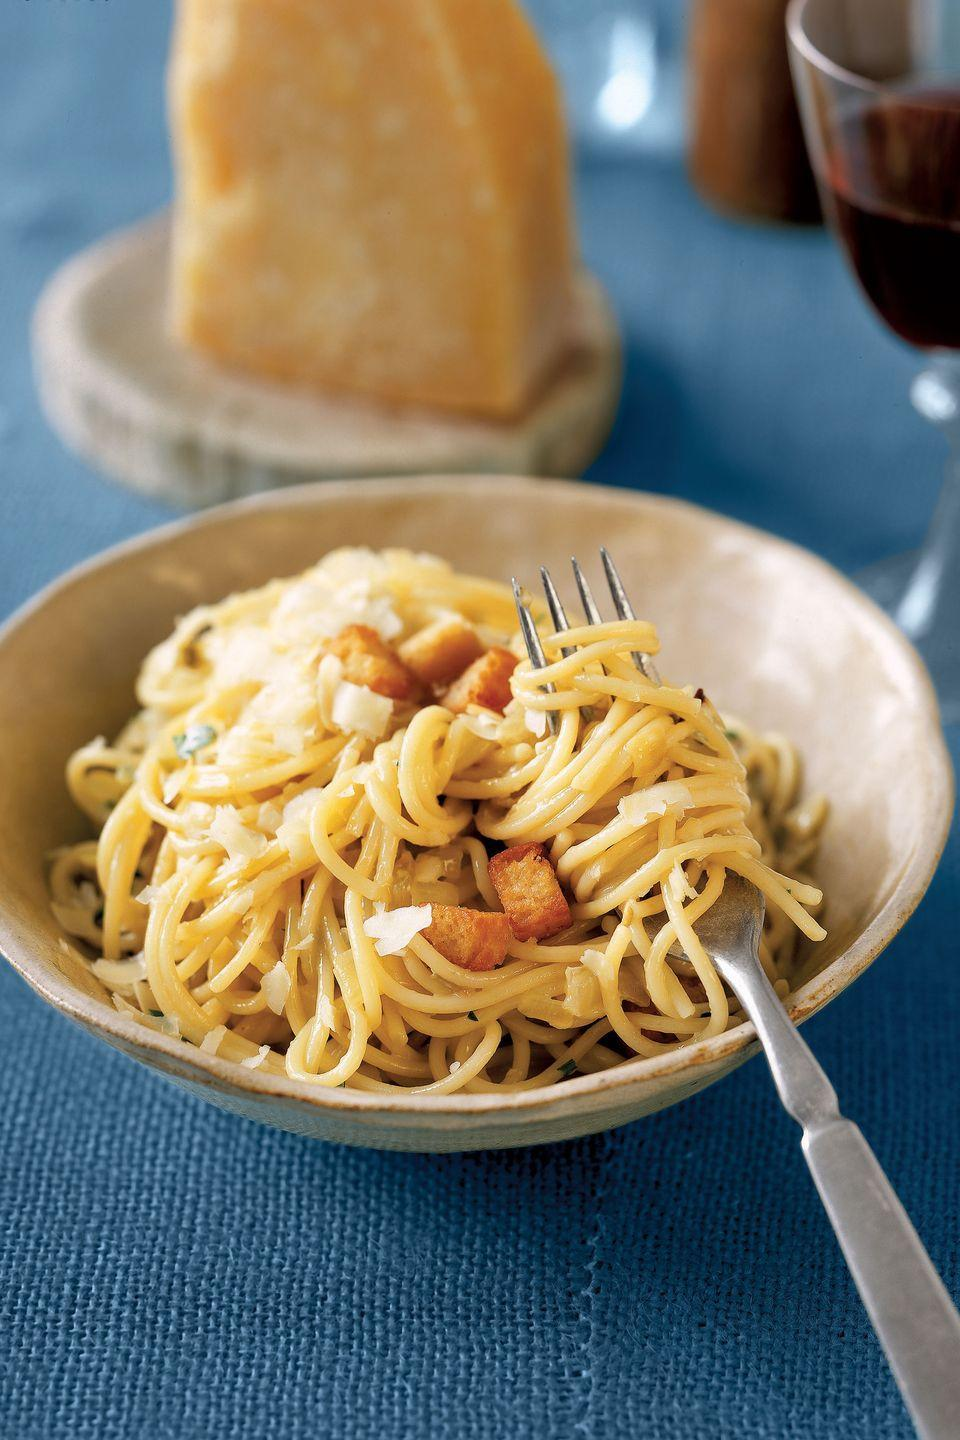 """<p>Quick and easy pasta begins with basic ingredients, such as mushrooms, onions, and red peppers. An egg yolk is tossed with the ingredients and heated through before serving to glaze the pasta in rich, creamy flavor. Finish with a sprinkle of a fragrant, nutty cheese.</p><p><strong><a href=""""https://www.countryliving.com/food-drinks/recipes/a791/easy-pantry-pasta/"""" rel=""""nofollow noopener"""" target=""""_blank"""" data-ylk=""""slk:Get the recipe"""" class=""""link rapid-noclick-resp"""">Get the recipe</a>.</strong></p>"""